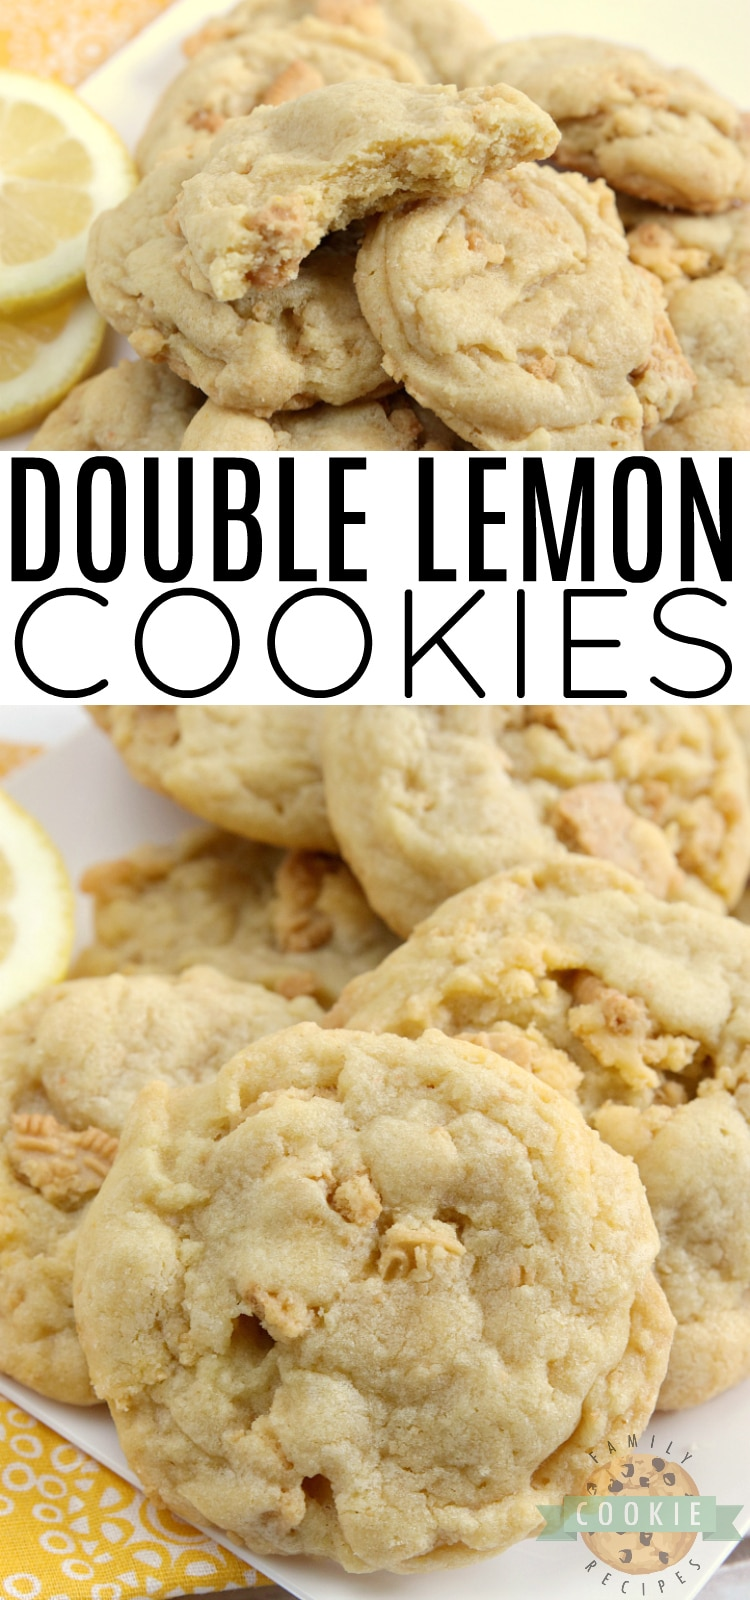 Double Lemon Cookies made with lemon pudding mix and crushed Lemon Oreos for lots of delicious lemon flavor! These cookies are soft, chewy and super easy to make too! via @familycookierecipes